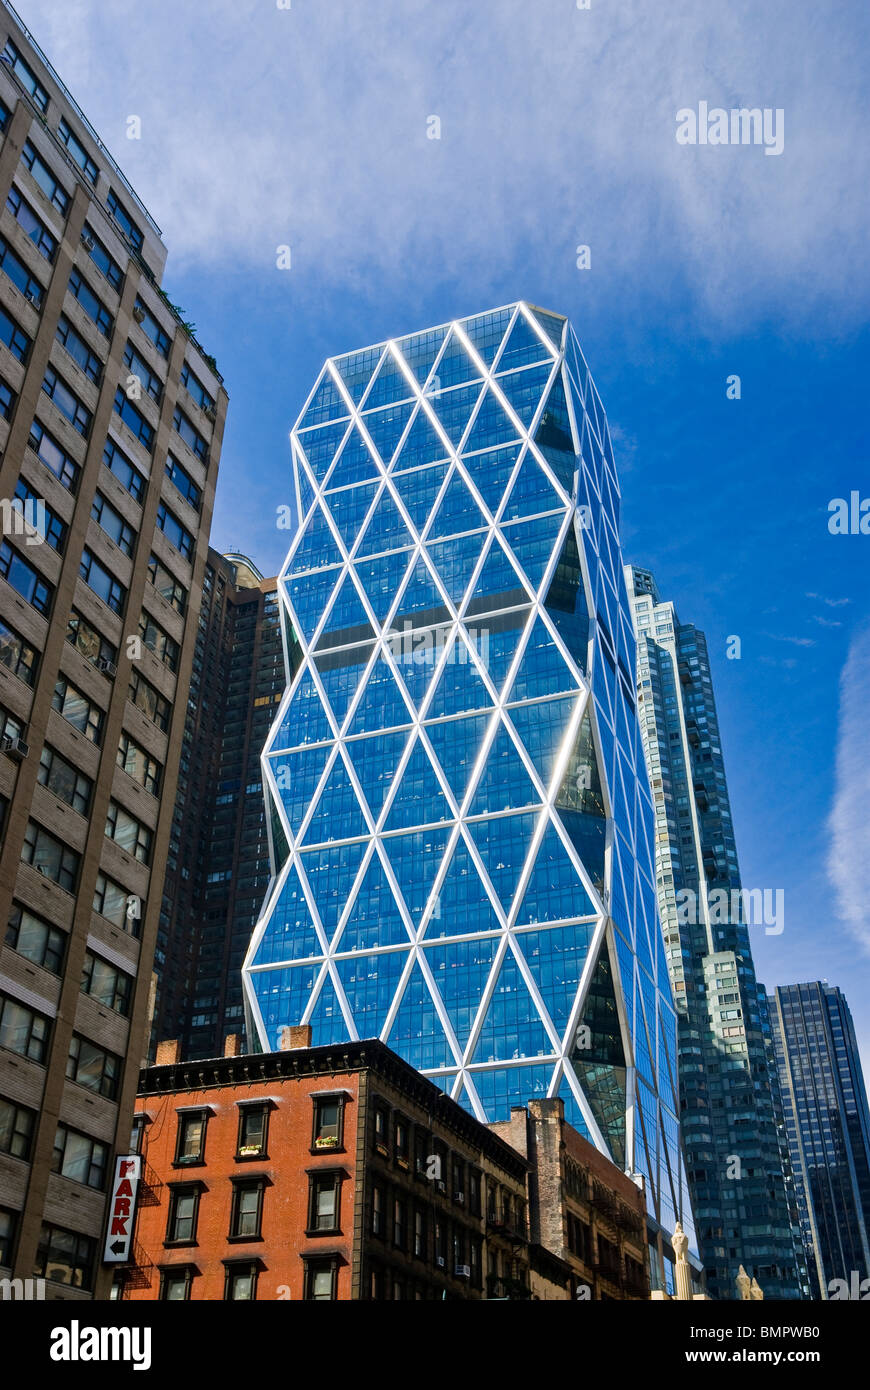 Hearst tower norman foster architect new york city stock - Forster architekt ...